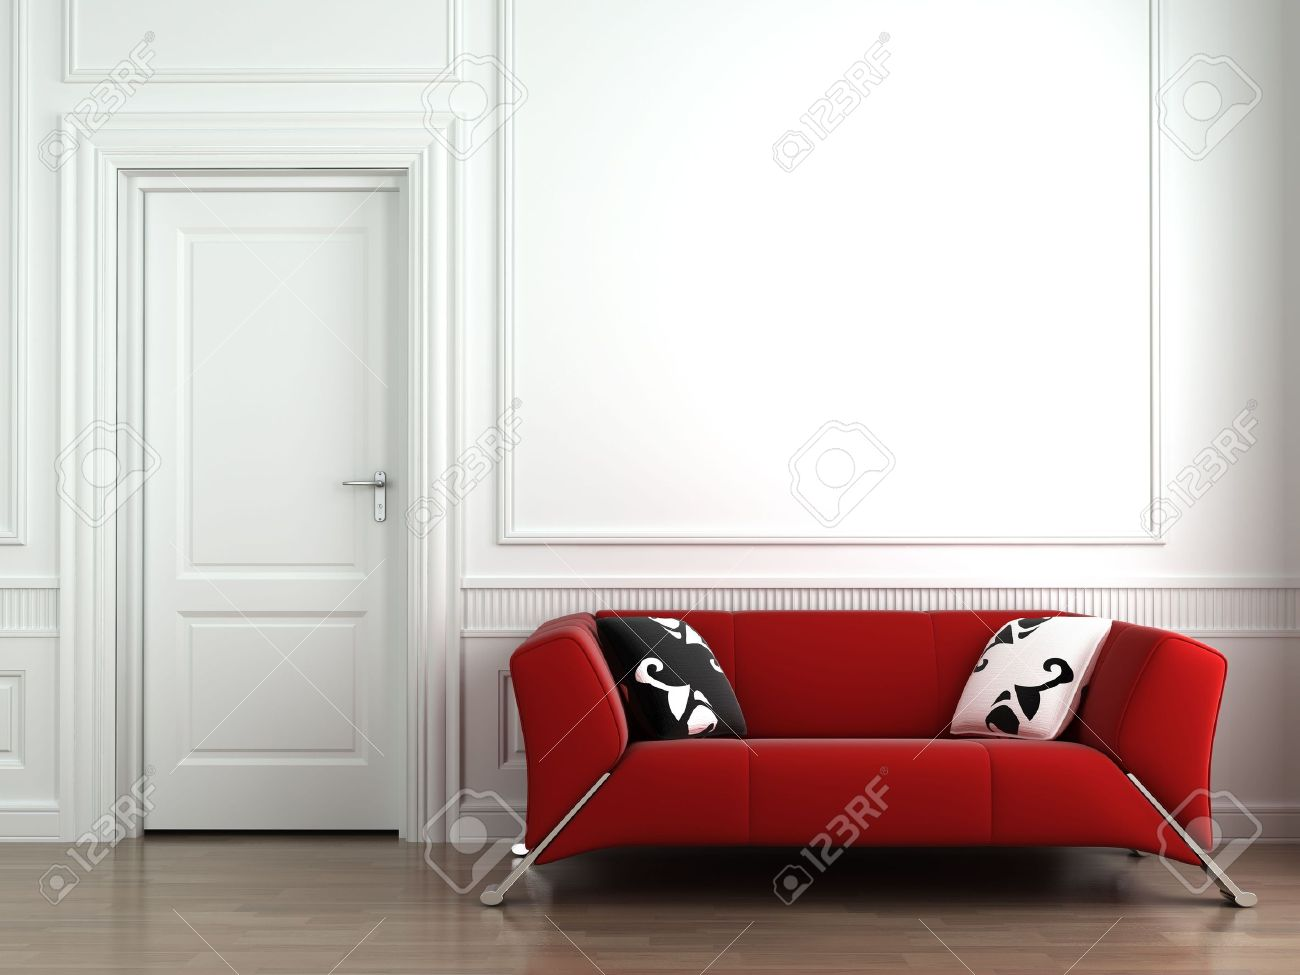 3d Interior Scene Of A Red Couch On White Classic Wall. This.. Stock ...